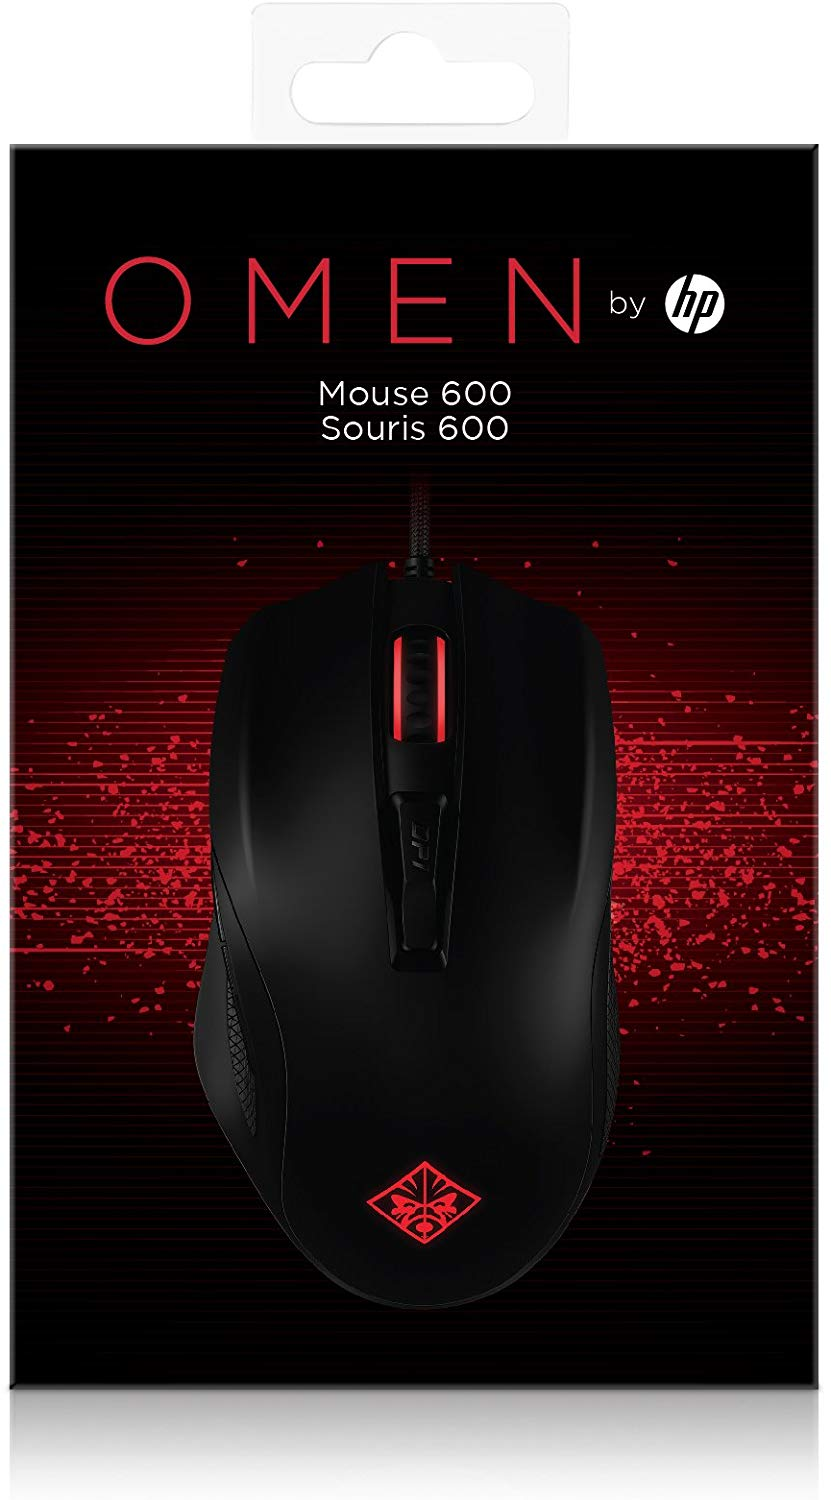 OMEN by HP Wired USB Gaming Mouse 600 (Black/Red)_3